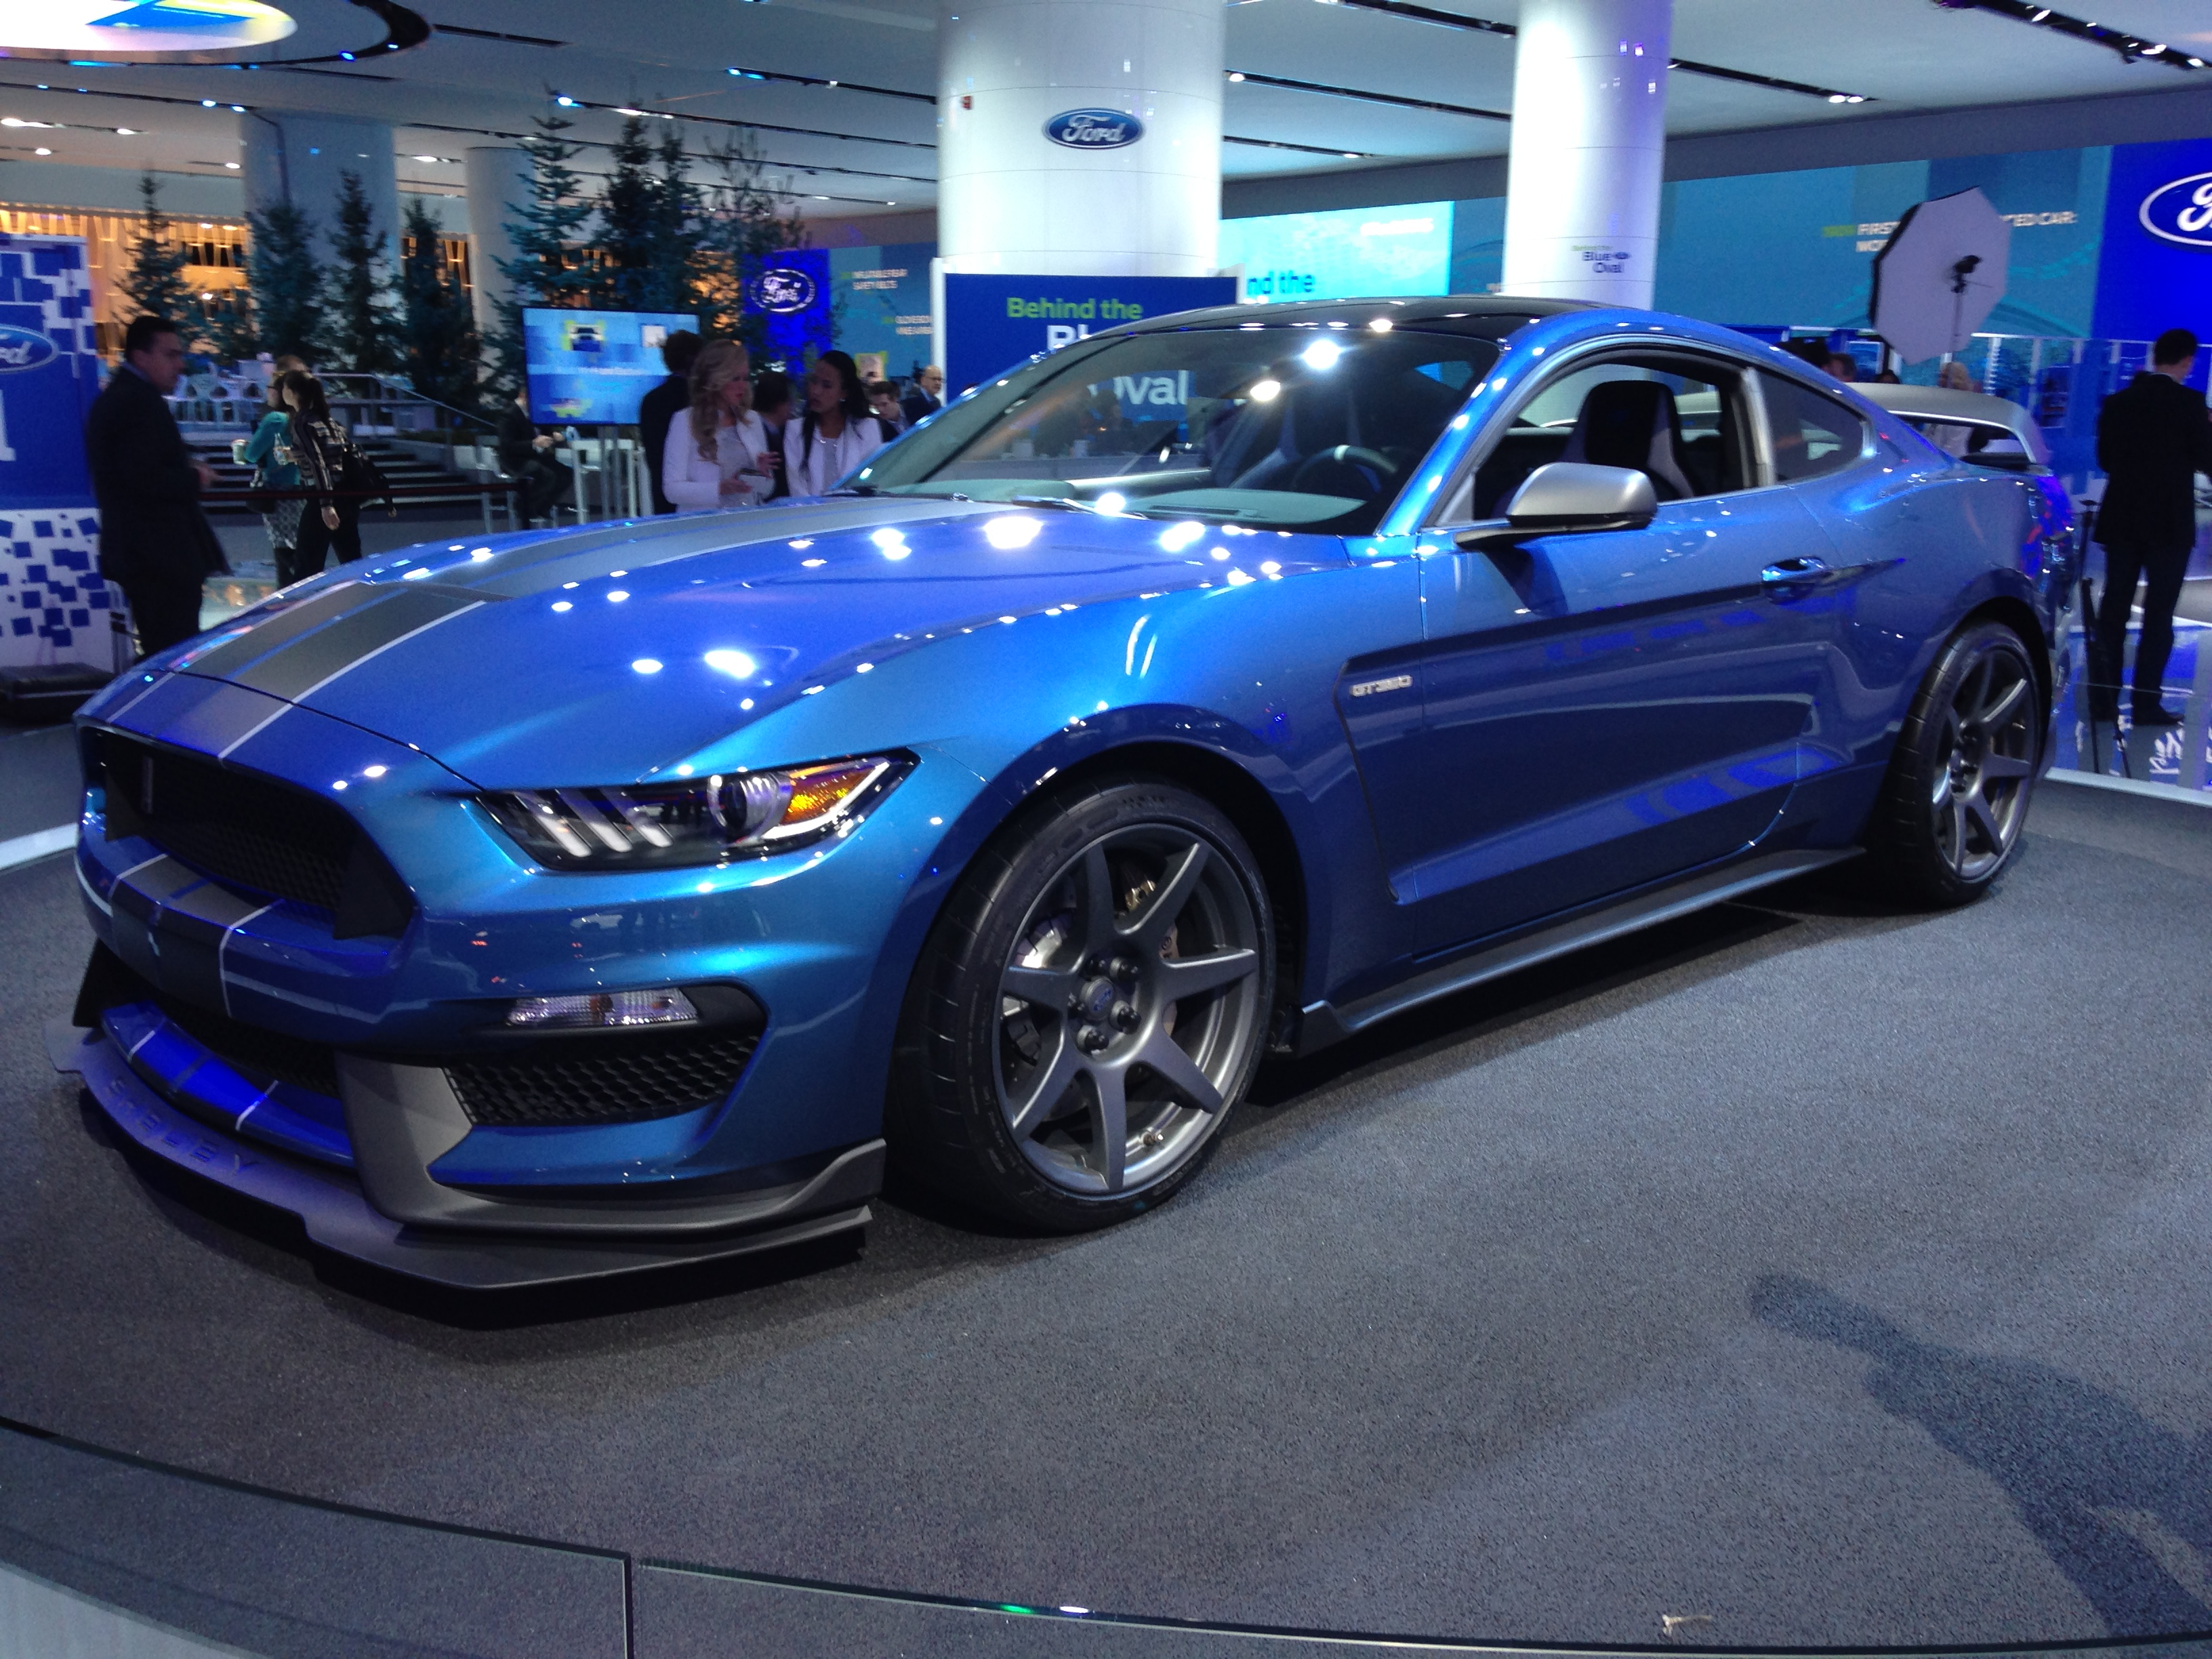 2016 Ford Mustang GT500R